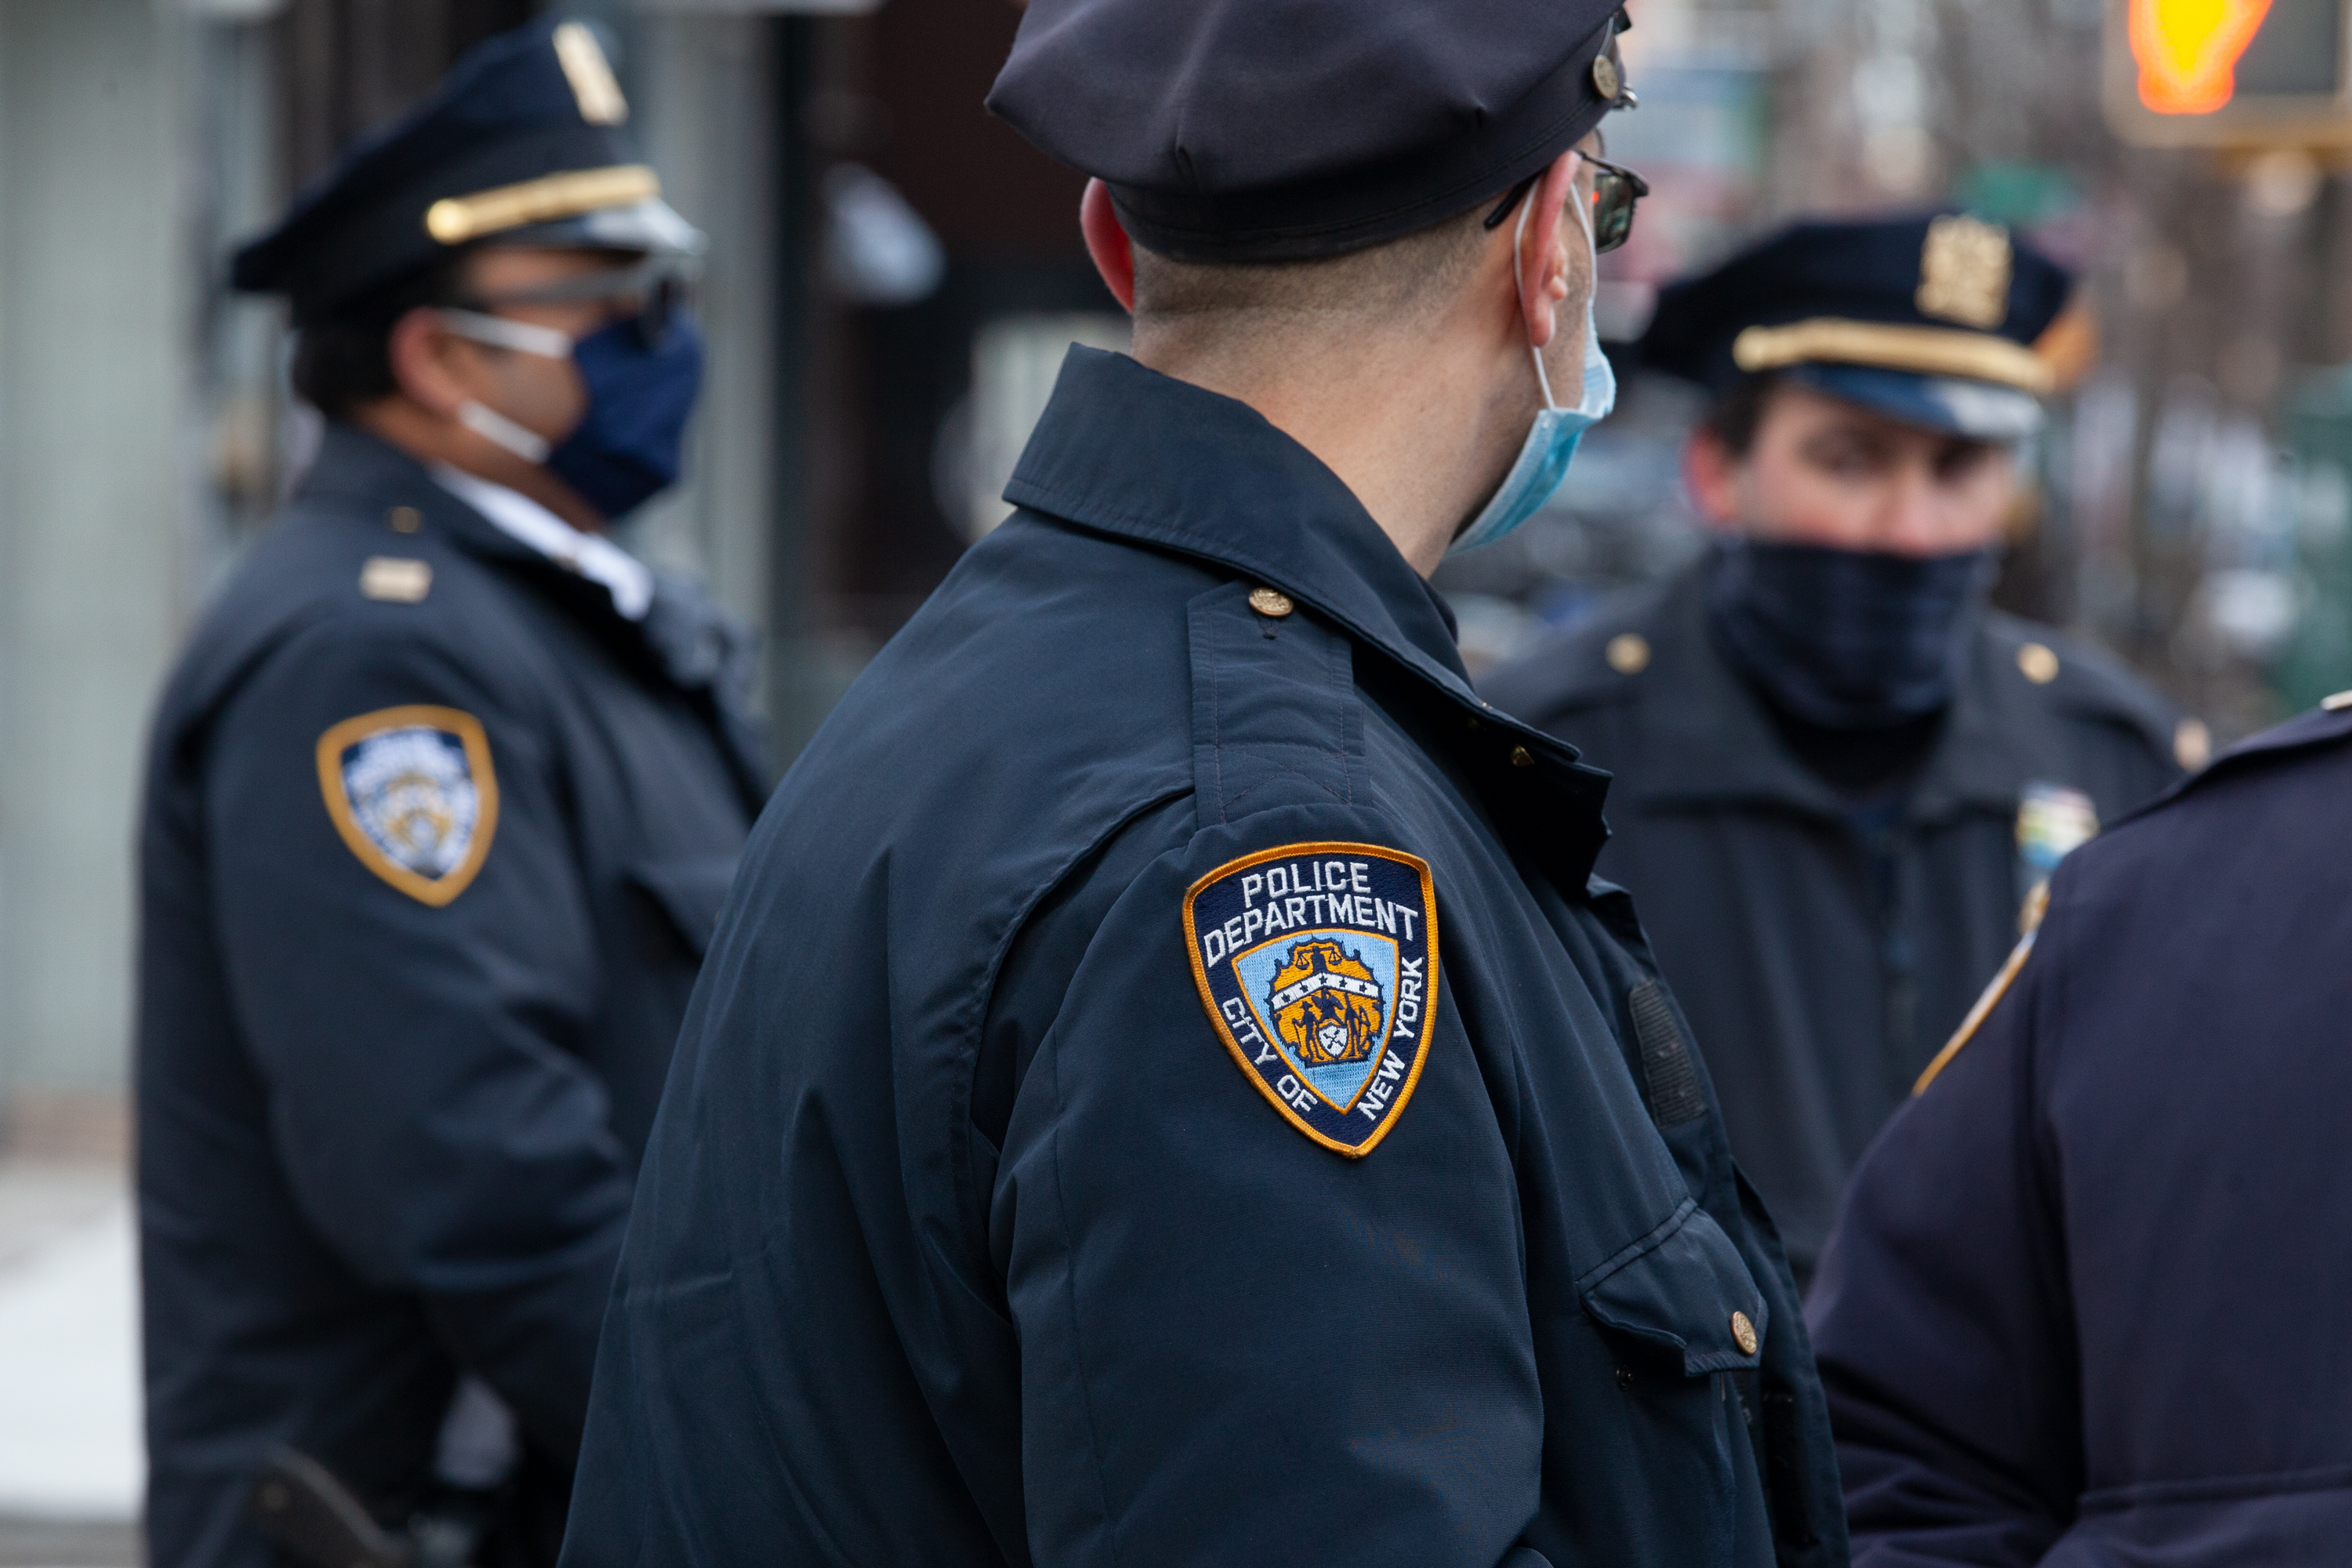 NYPD officers keep watch on a workers' rights protest in Crown Heights, Brooklyn, Jan. 20, 2021.